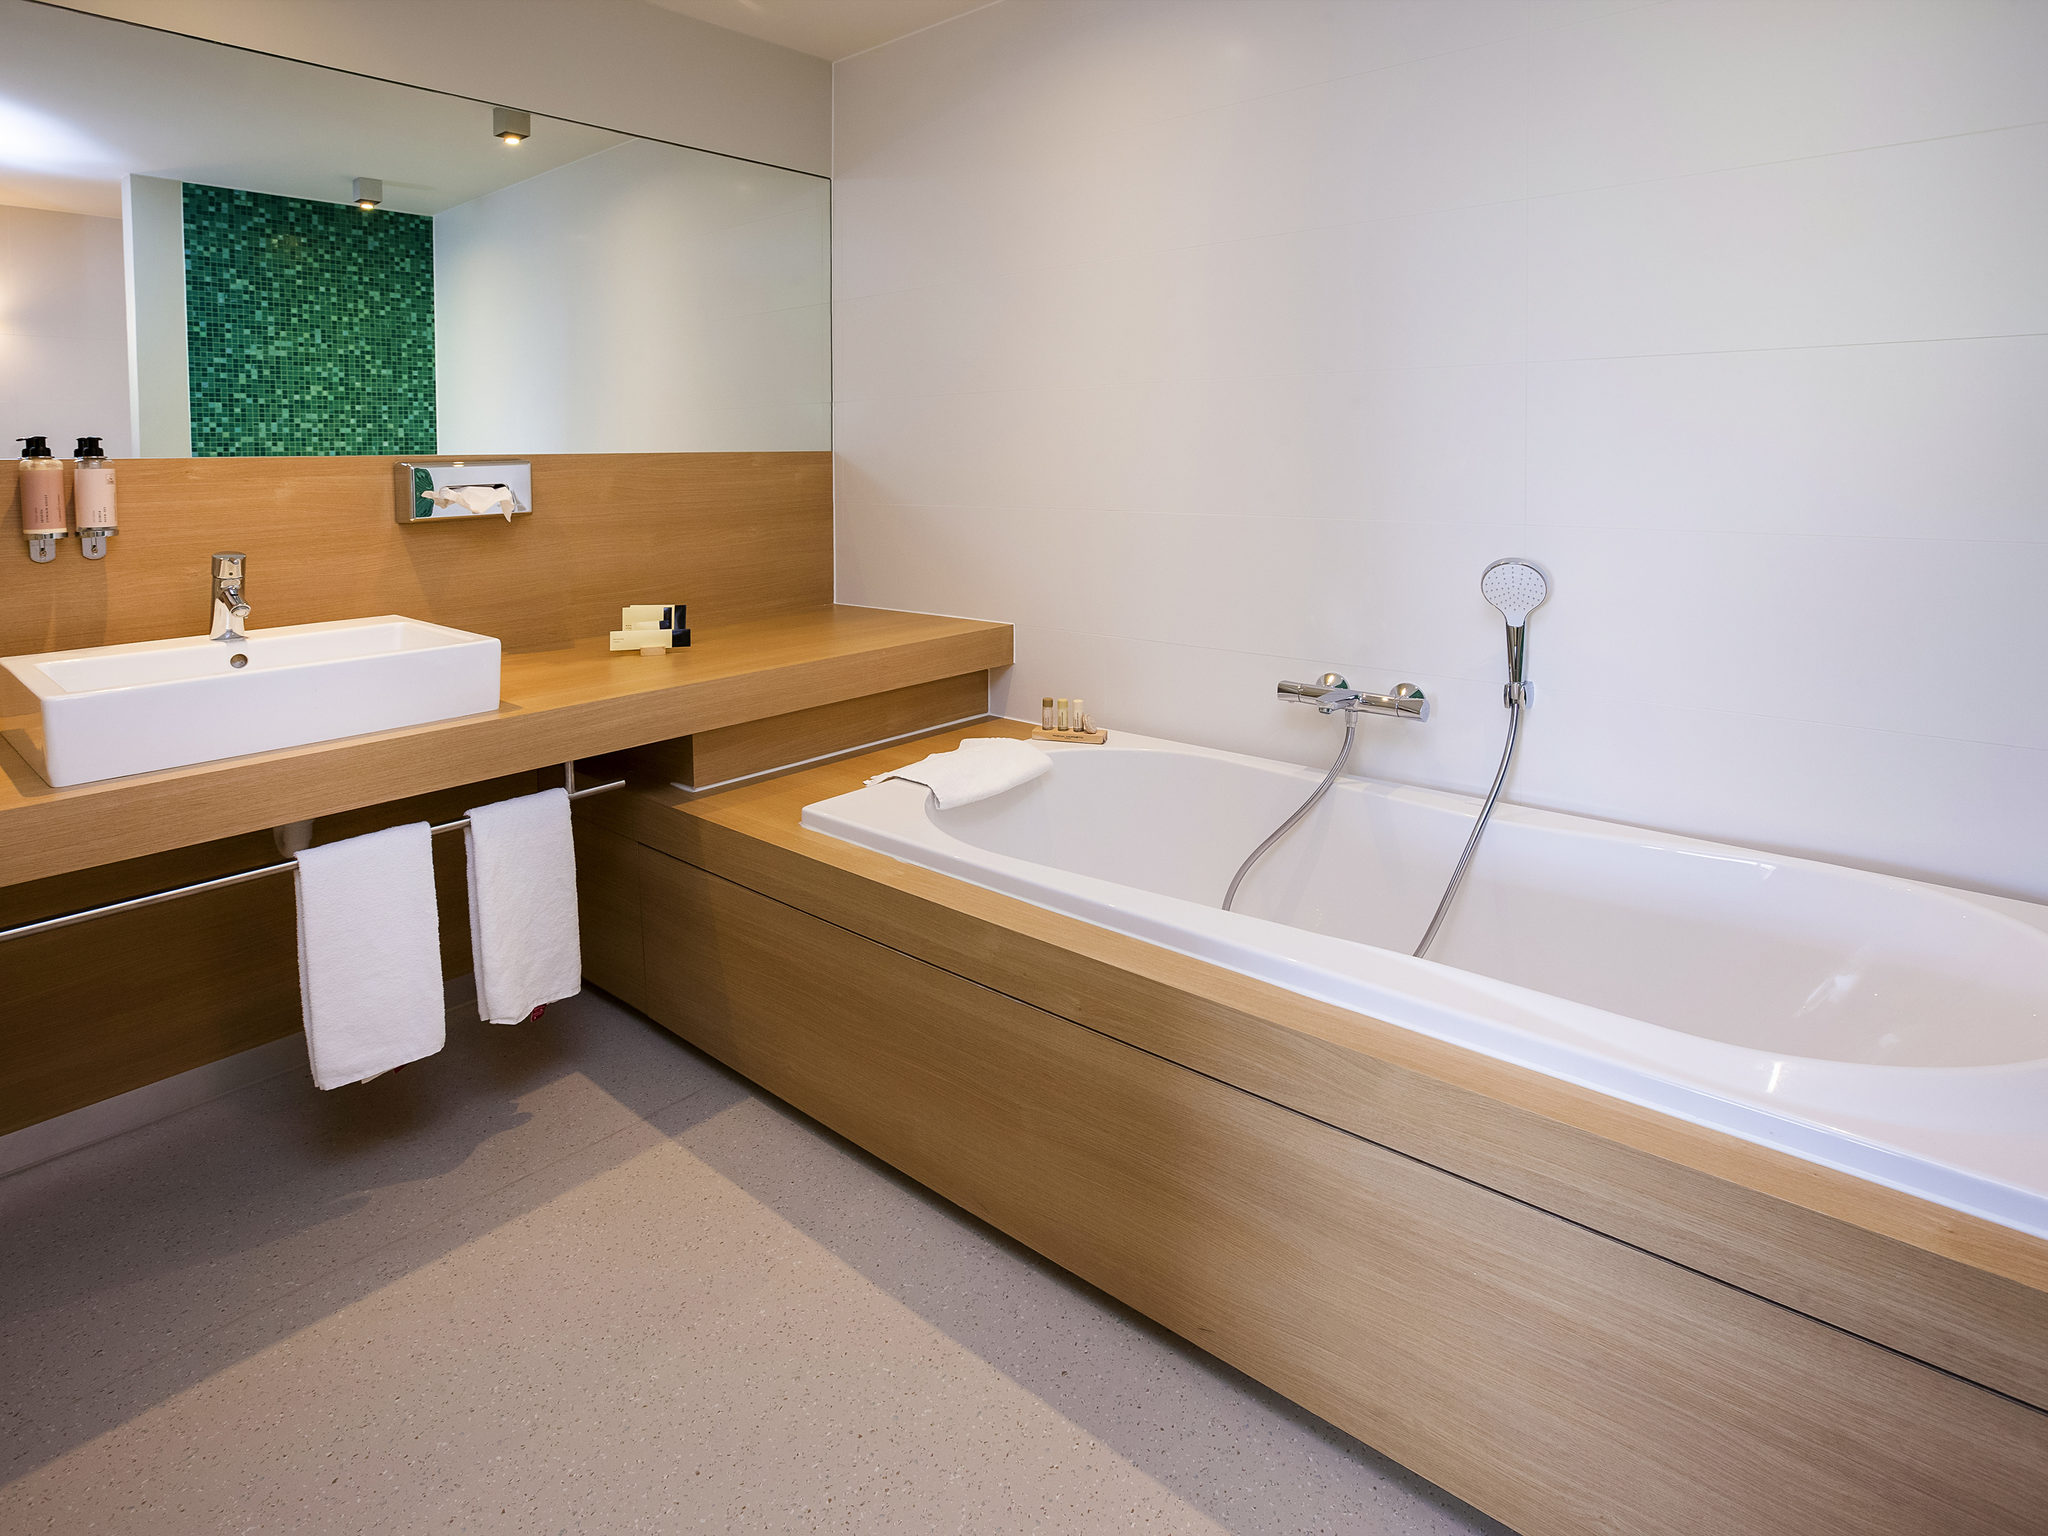 Cheap Hotel Kortrijk Ibis Styles Near Kortrijk XPO - Bathtub styles photos